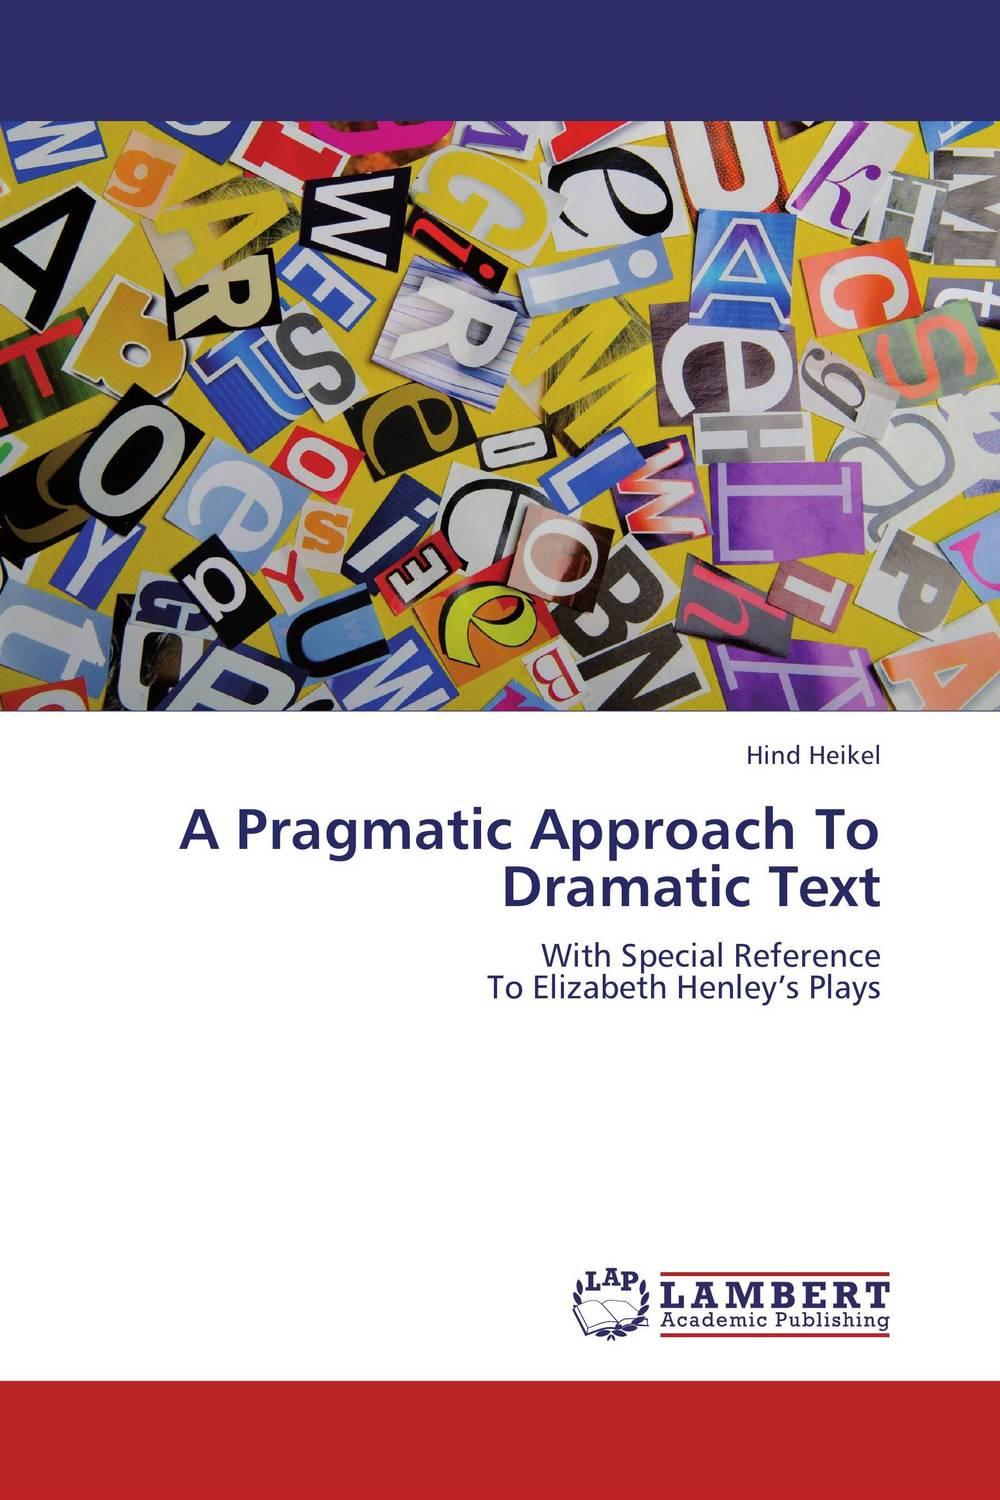 A Pragmatic Approach To Dramatic Text seeing things as they are